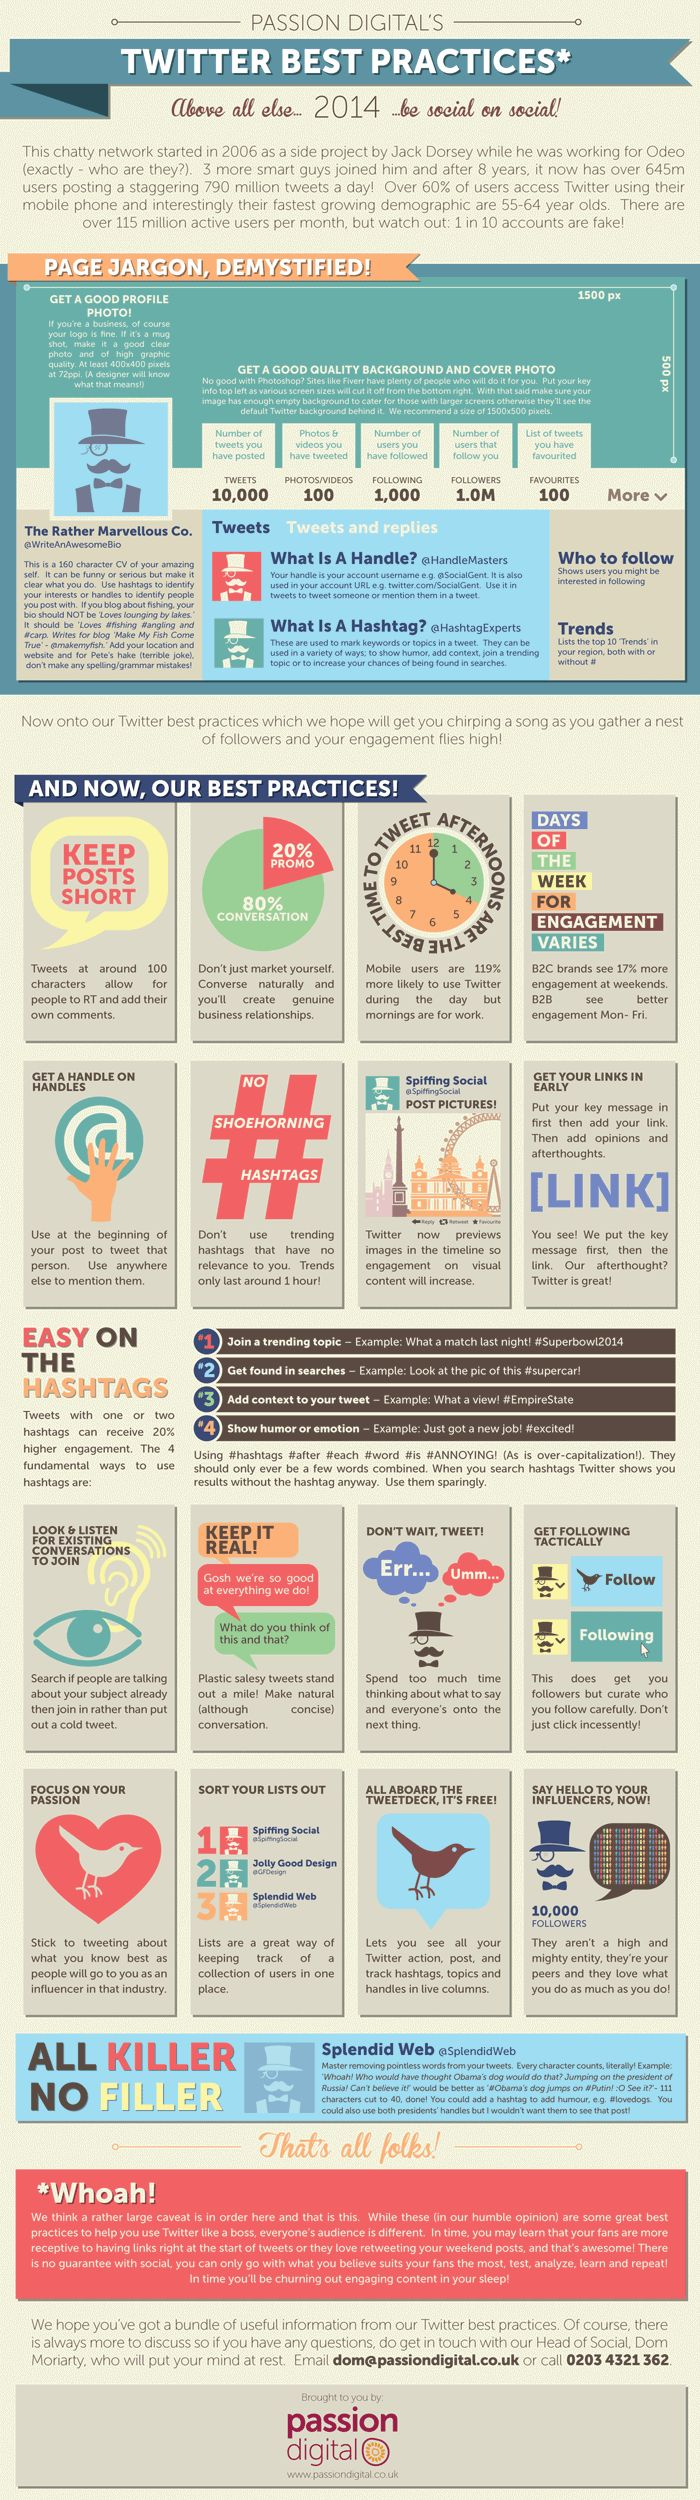 Are You Using These Twitter Best Practices? Infographic